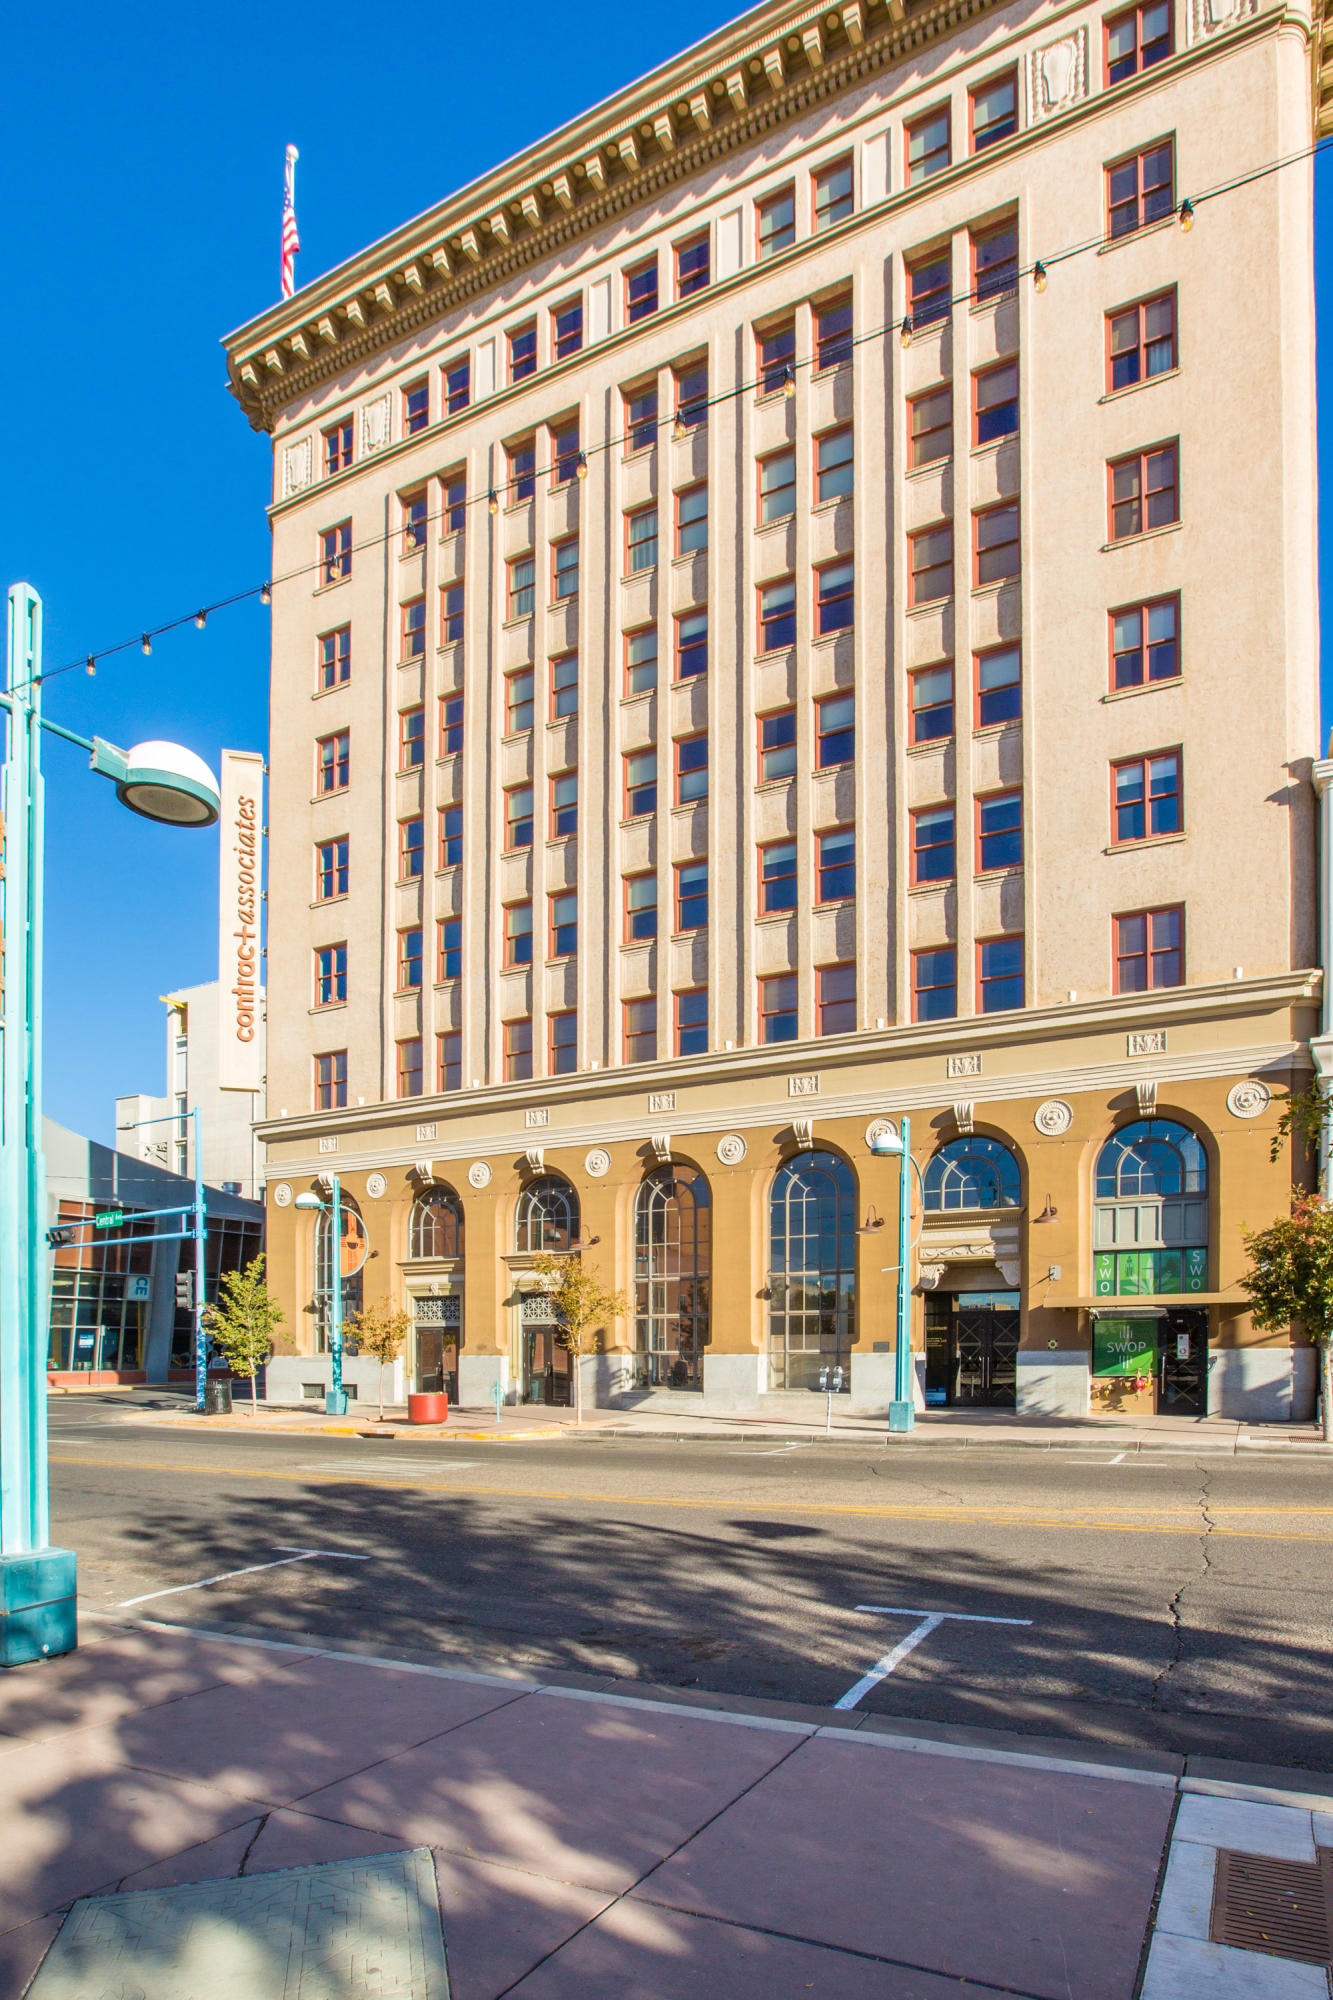 Located in the Heart of Downtown ABQ in a secure, key card access old Sunrise Bank Building.  This 2 level unit is beautifully appointed with modern fixtures, lighting and materials.  The kitchen features stainless steel appliances and custom cabinetry.   A half bath is located on the first floor.  Follow the steel and wood staircase to the 2nd floor where you'll find a master bedroom suite with a private patio, walk-in closet and spa style bath.  The  large guestroom has beautiful south facing views.  Access to the 8,000+sqft rooftop deck with expansive panoramic views of the city and mountains!  5th floor garage access parking is optional.